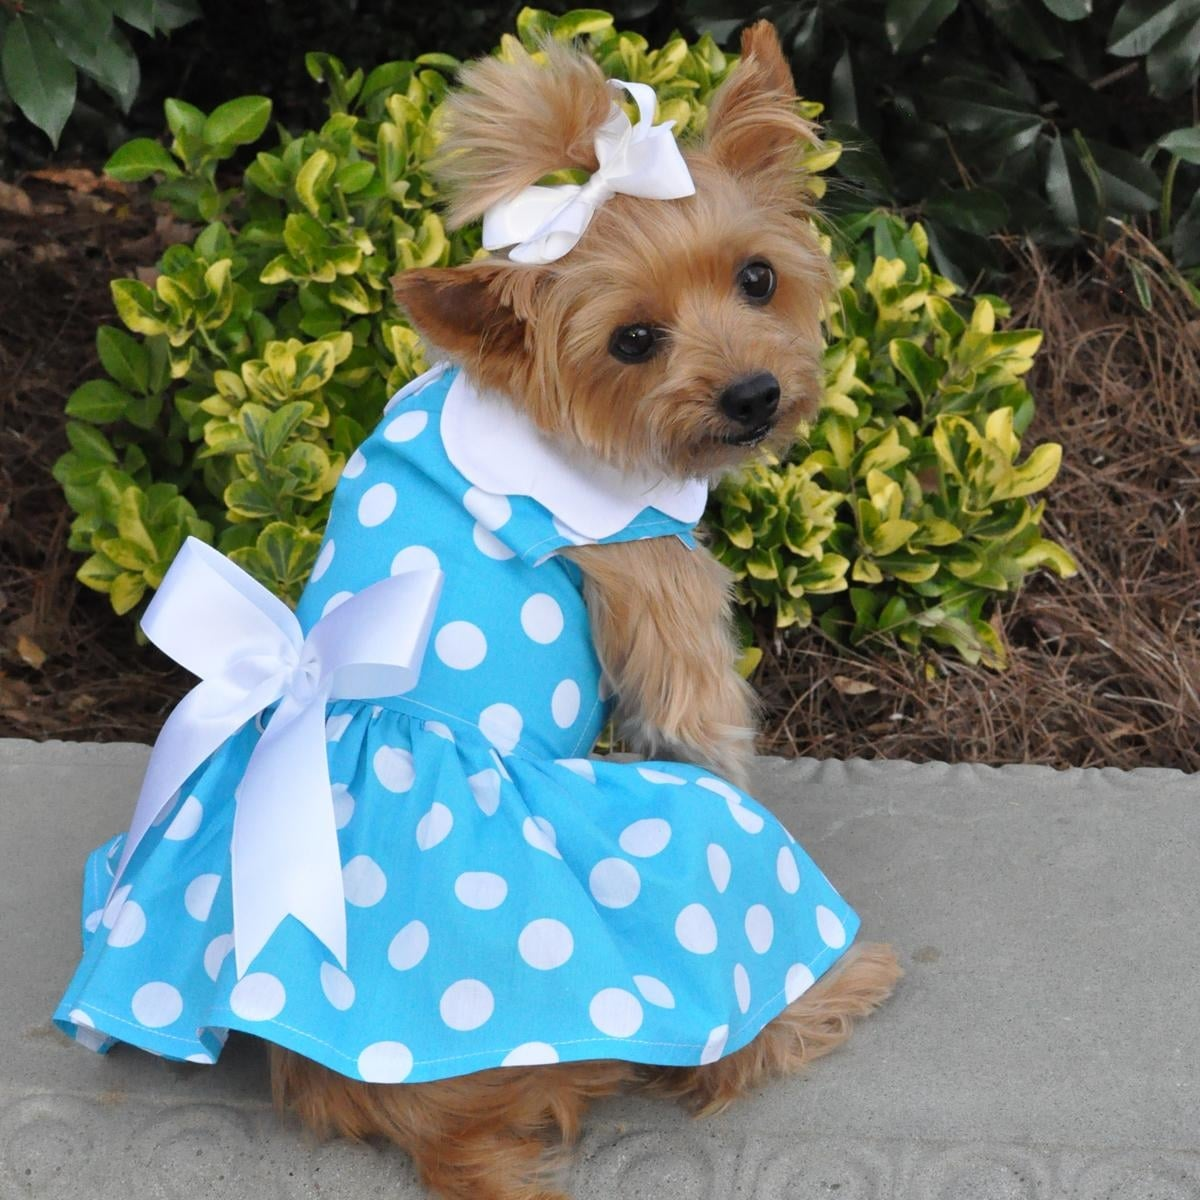 Blue Polka Dot Dog Dress with Matching Leash by Doggie Design (X-Small)